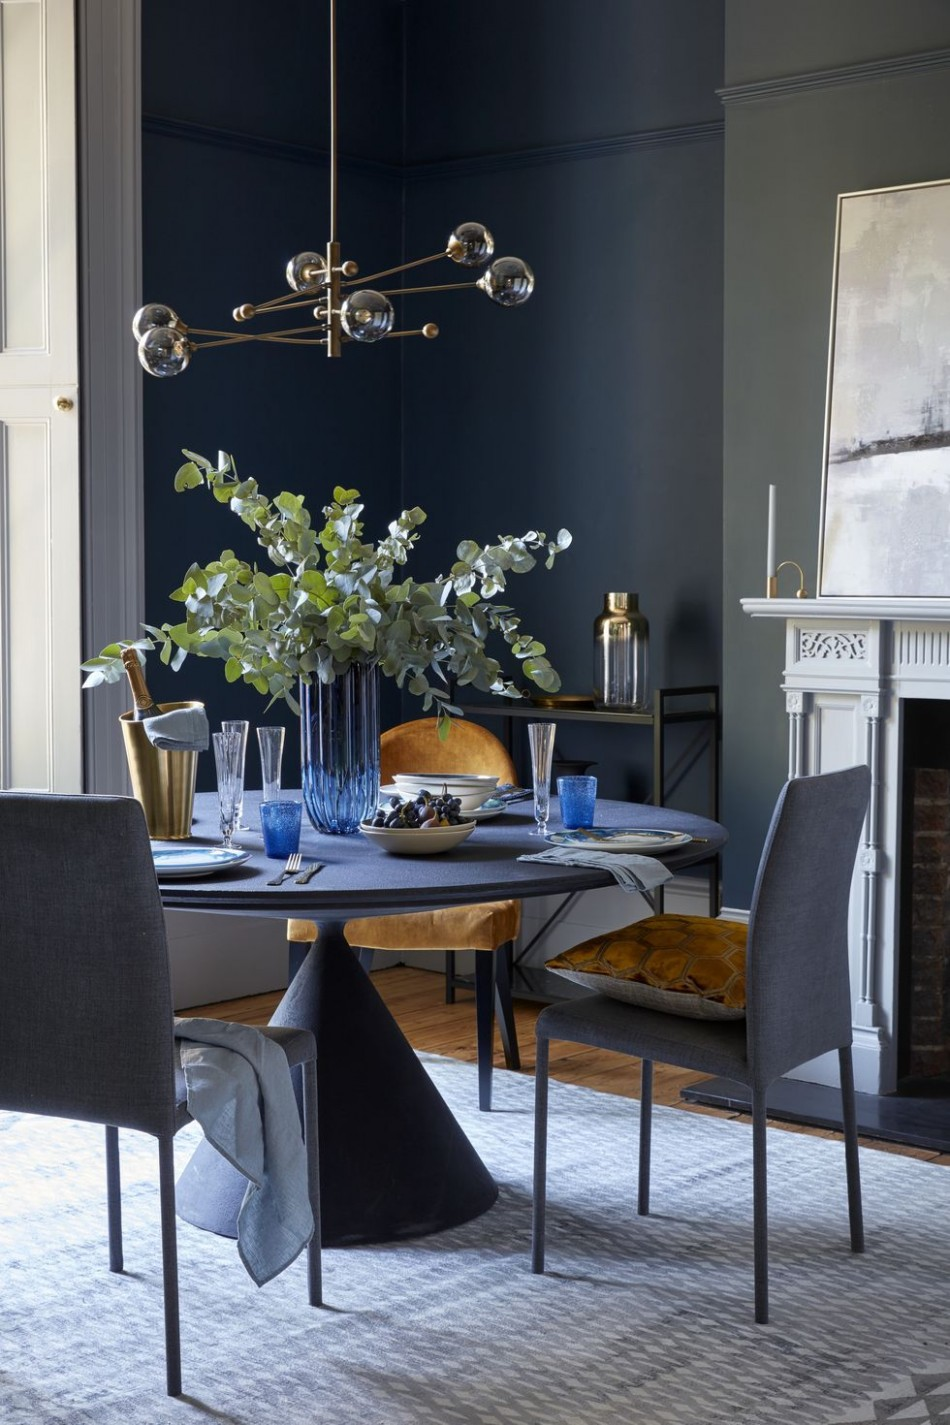 12 Small Dining Room Ideas - How to Decorate Your Small Dining Room - Small Dining Room Ideas Uk